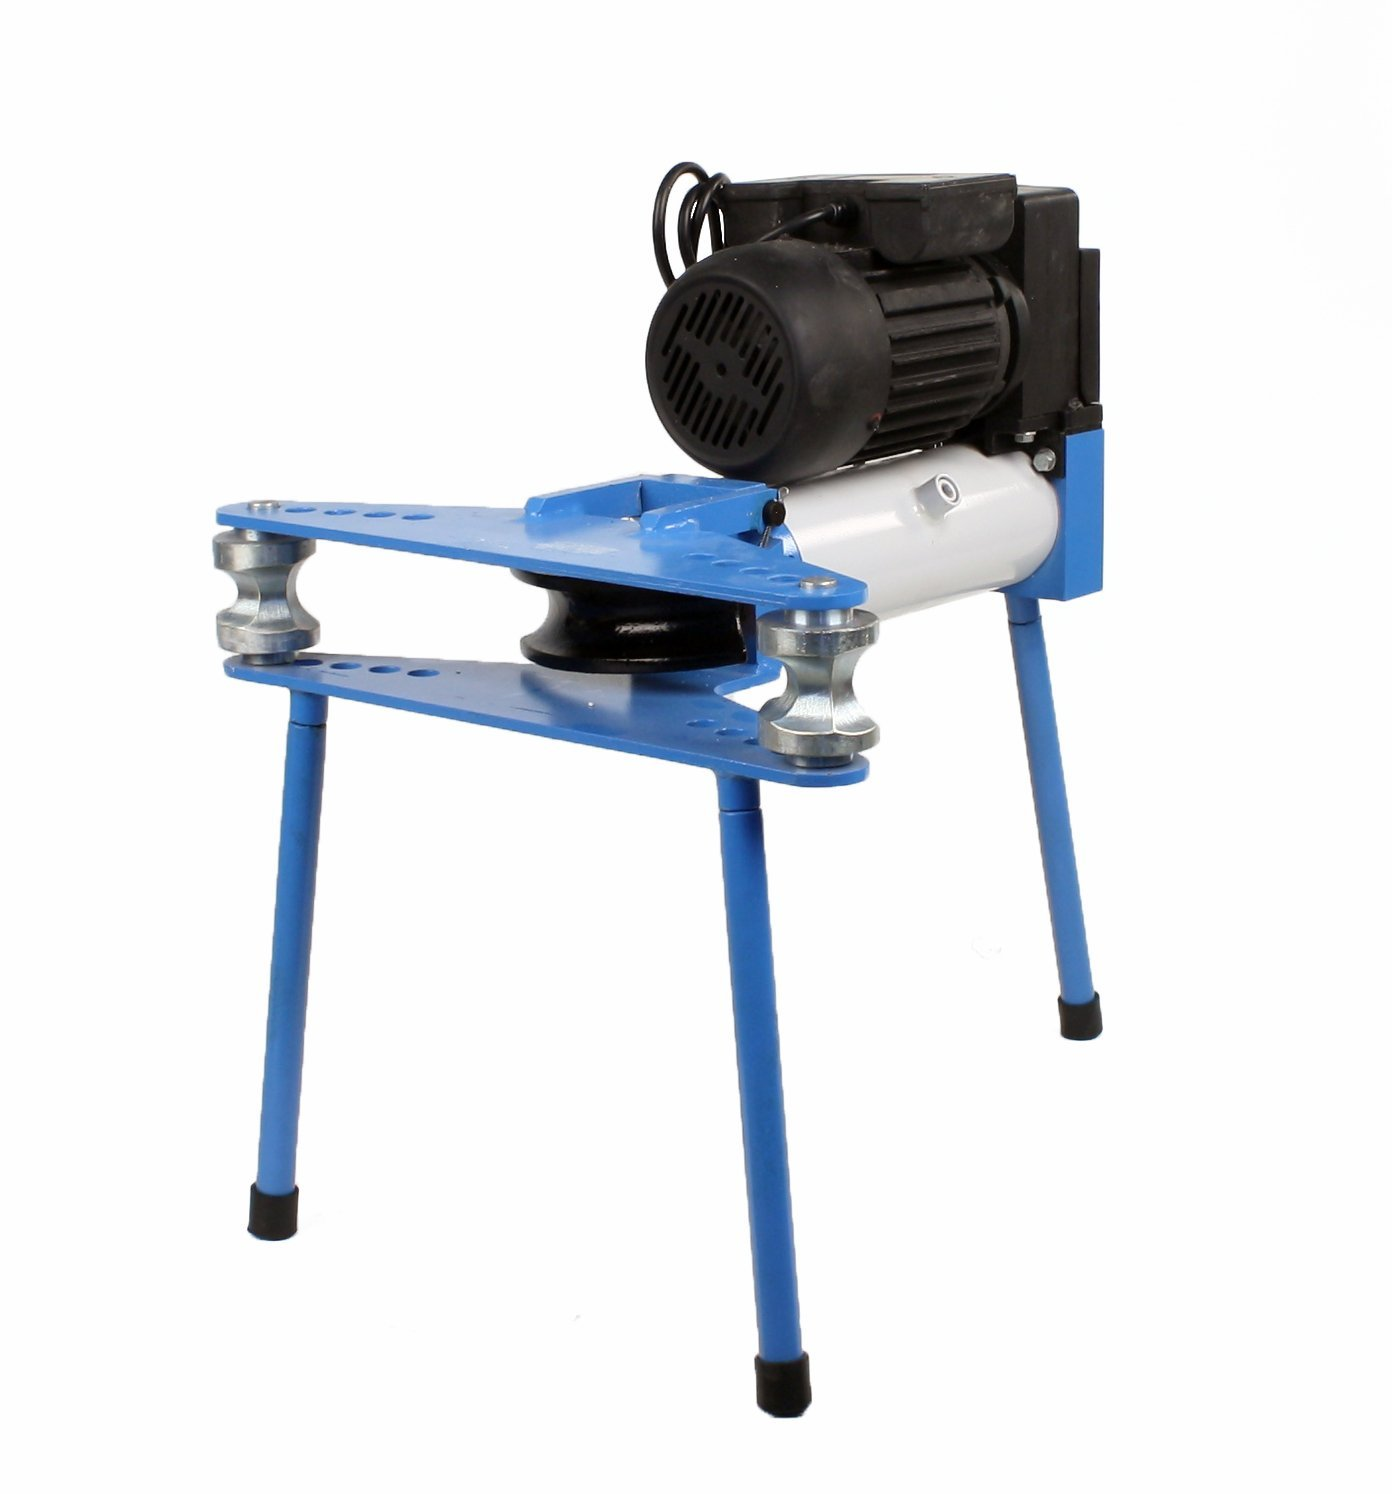 Erie Tools Electric 10-Ton Hydraulic Pipe Tube Bender With Six Bending Dies 1/2''-2'' And 110 V Motor